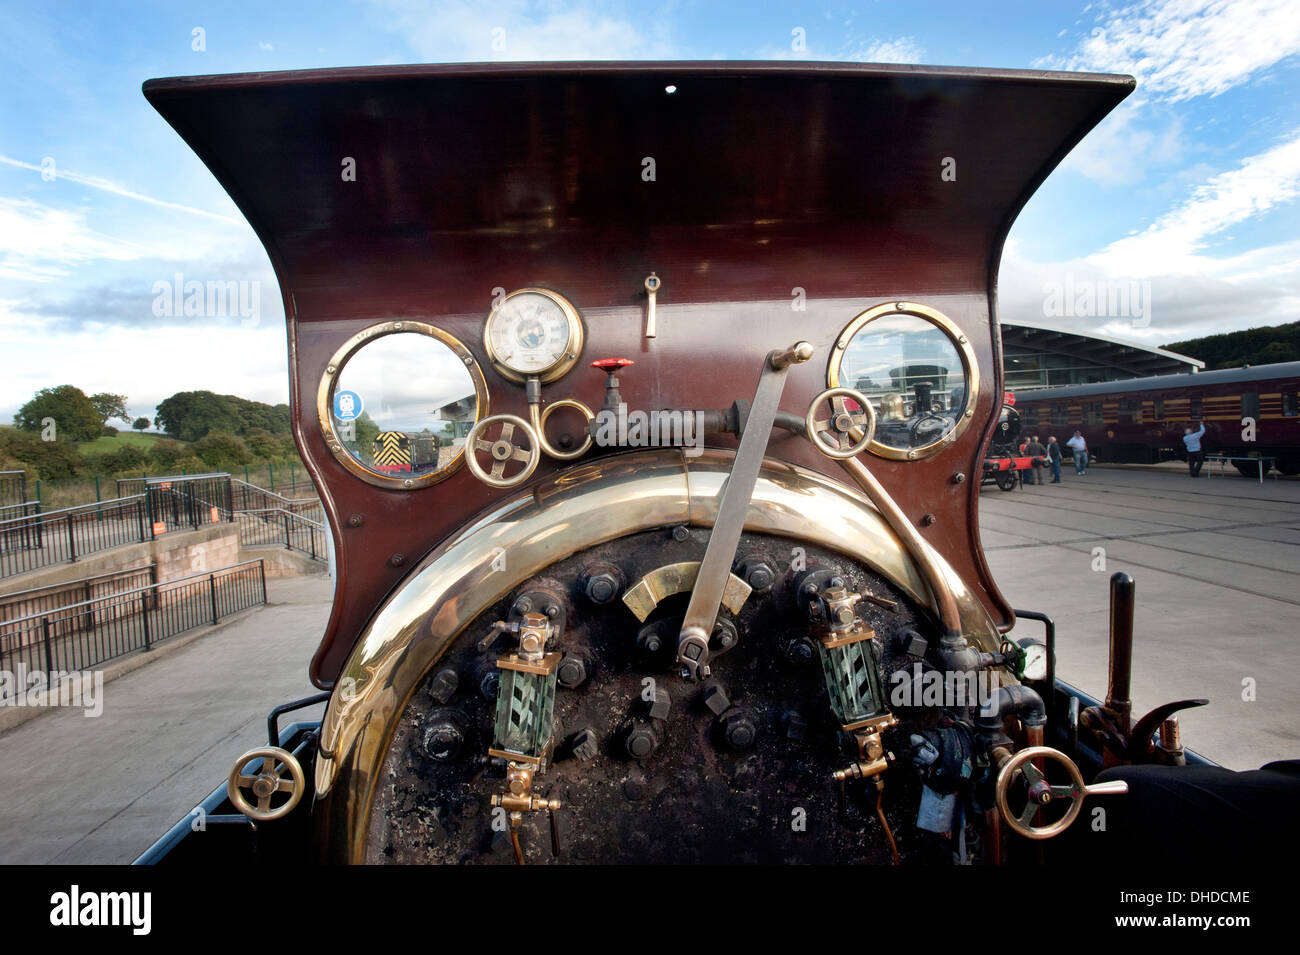 4 4 0 Tender Engine Steam Locomotive Stock Photos & 4 4 0